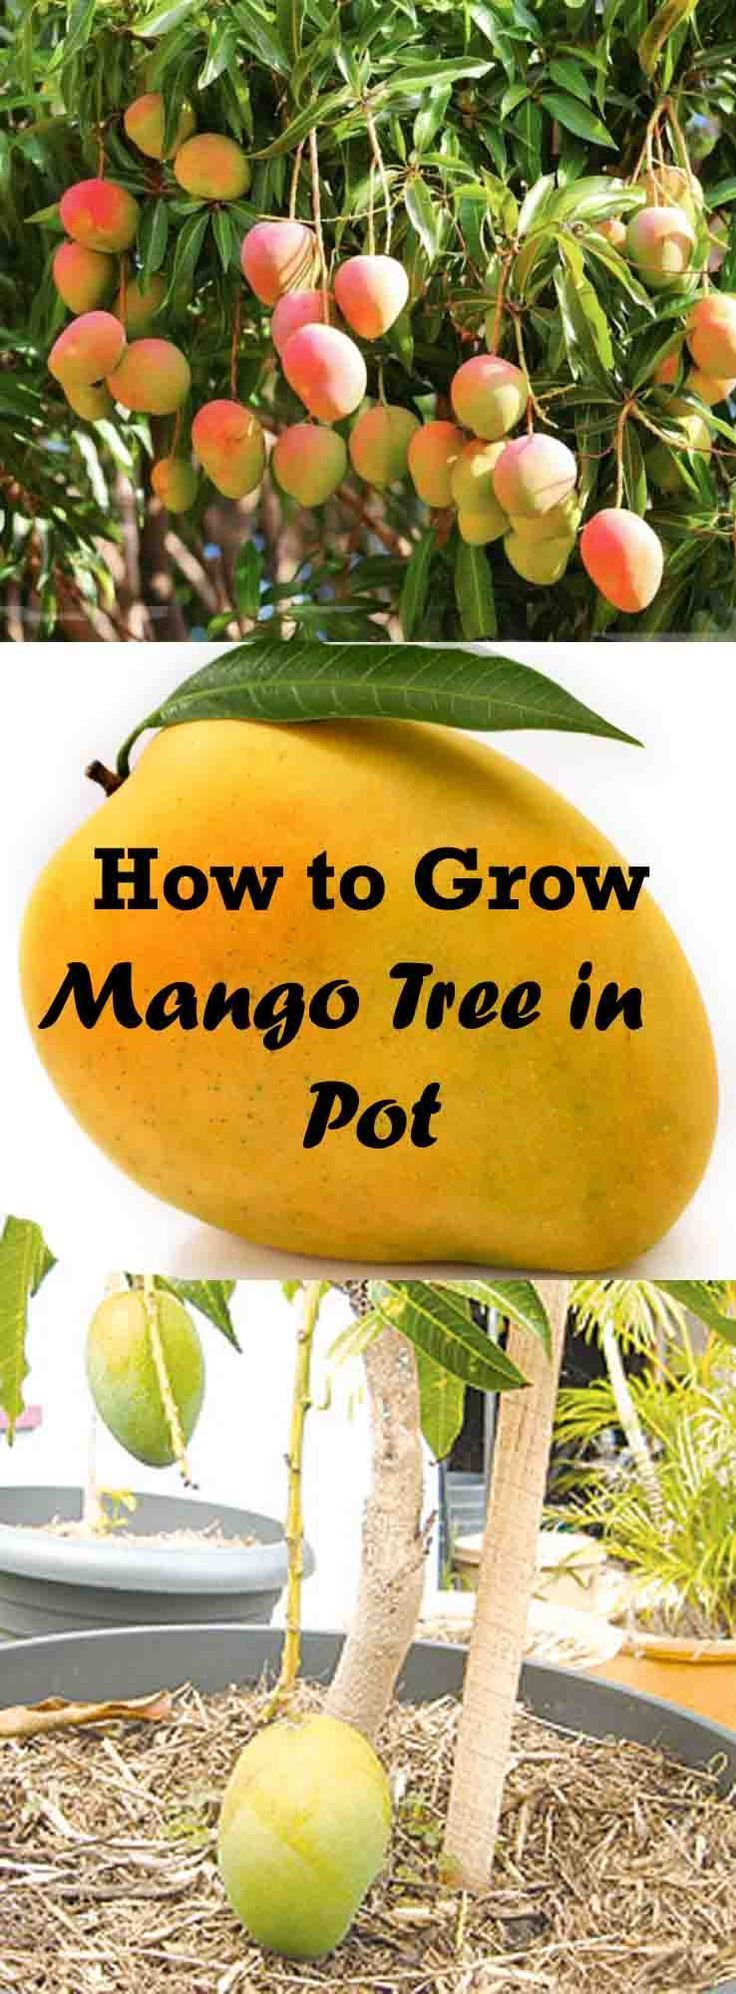 planting a mango tree Mango trees grow vigorously and must be calmed through timely pruning it is important to be aware of the type of seed to use and when to graft the mango rootstock.